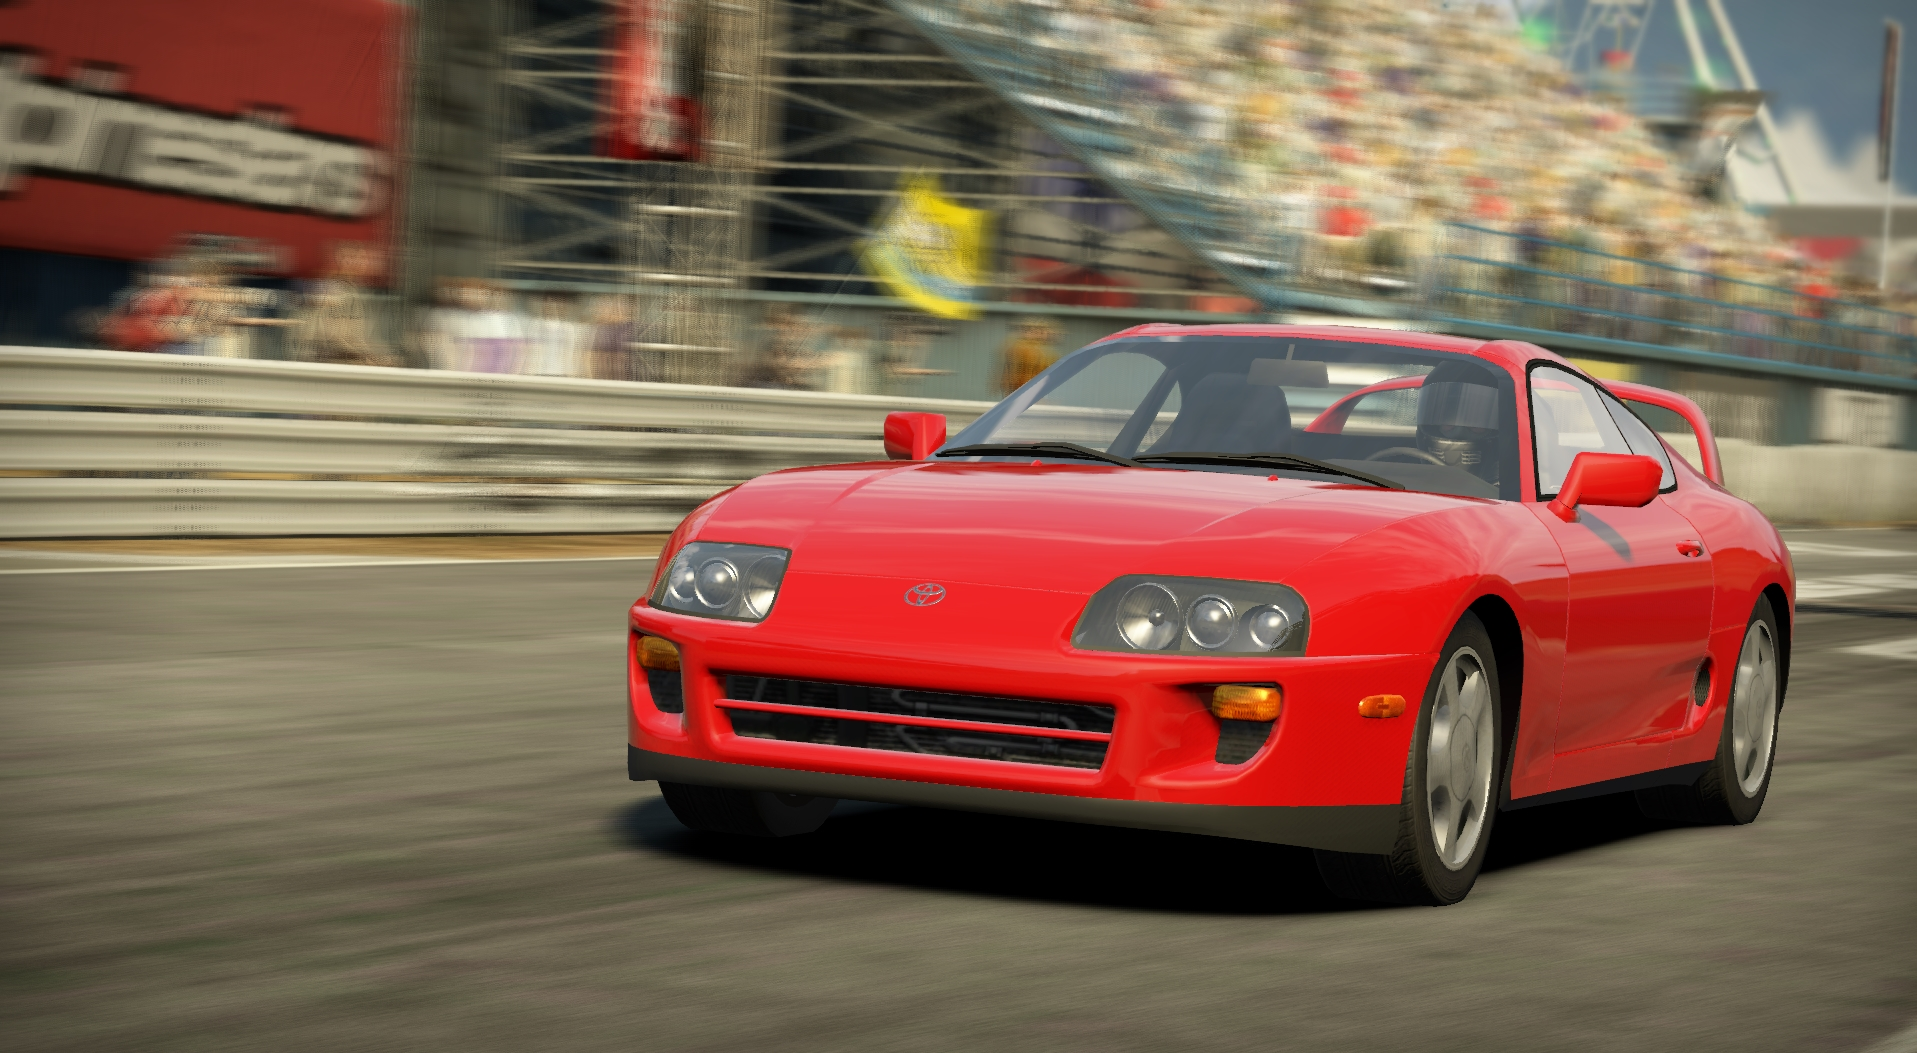 toyota supra rz mk4 need for speed wiki fandom powered by wikia. Black Bedroom Furniture Sets. Home Design Ideas